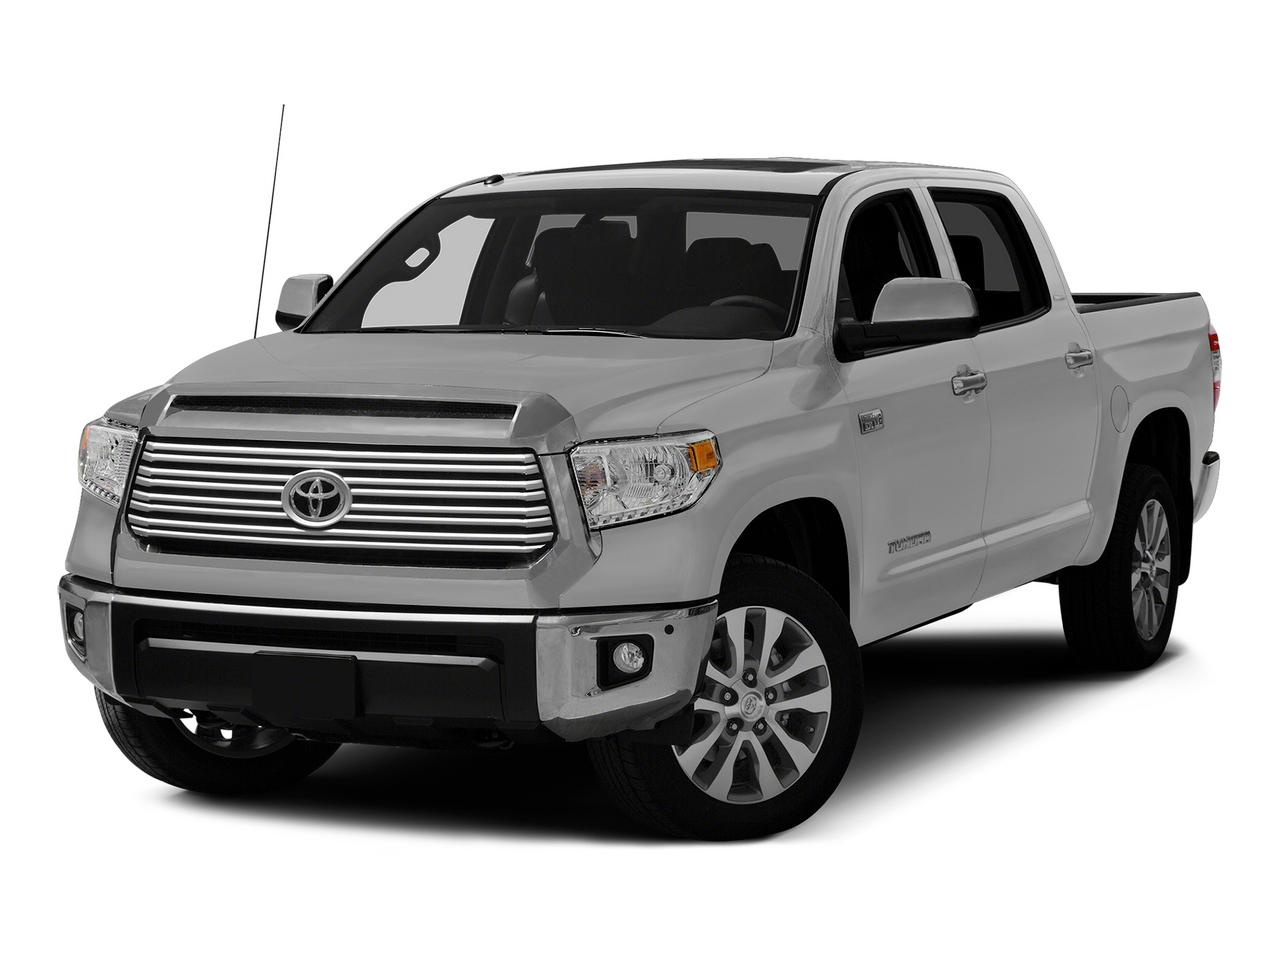 2015 Toyota Tundra 4WD Truck Vehicle Photo in Trevose, PA 19053